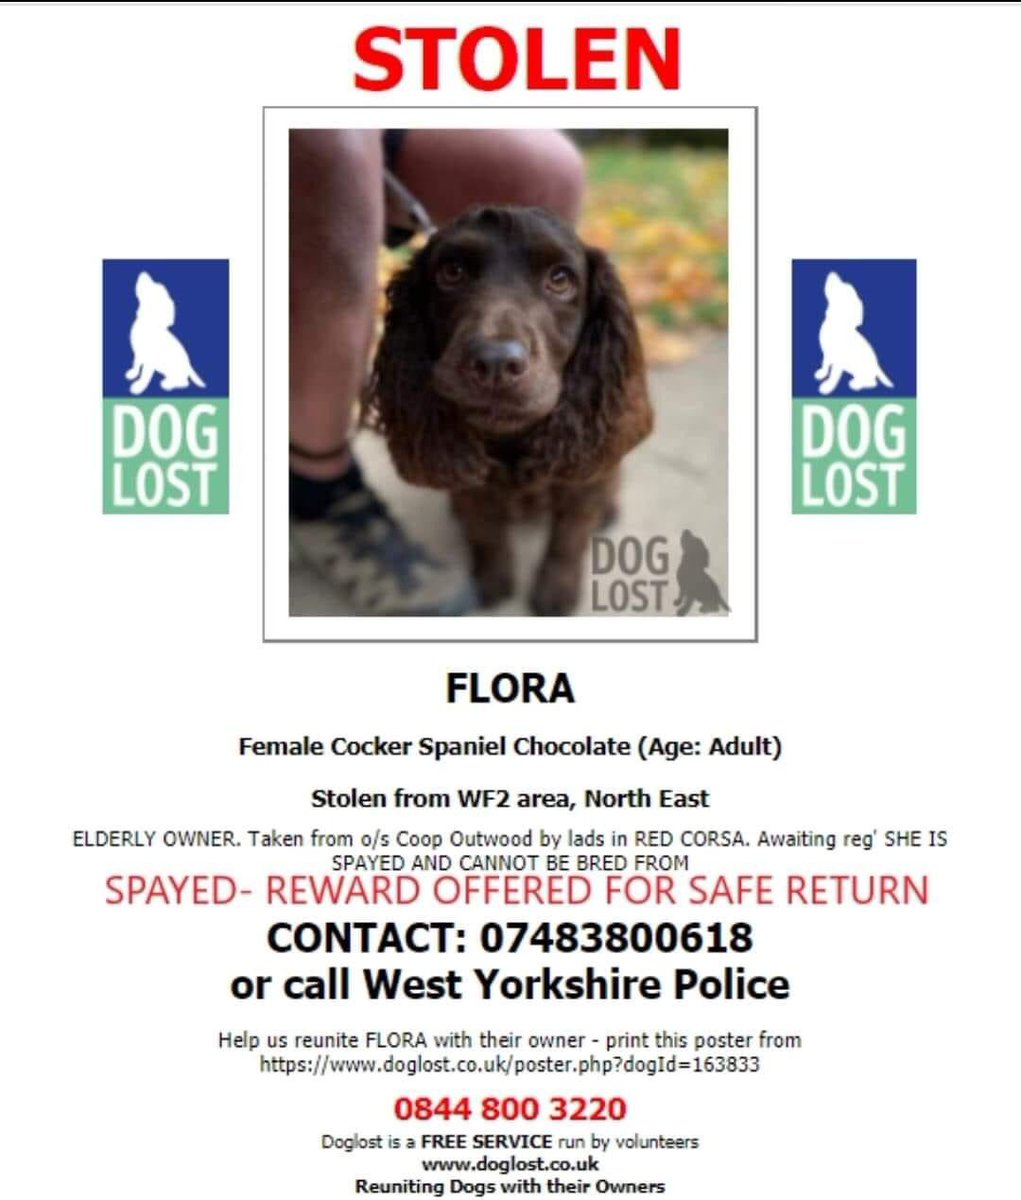 #SpanielHour  FLORA #Stolen from an elderly gentleman who is 💔  He's not slept, he's still searching, praying the ppl who took FLORA brings her home #Outwood #Wakefield  Owner will be speaking to #press chocolate #cocker CHIPPED&SPAYED  18/1/21